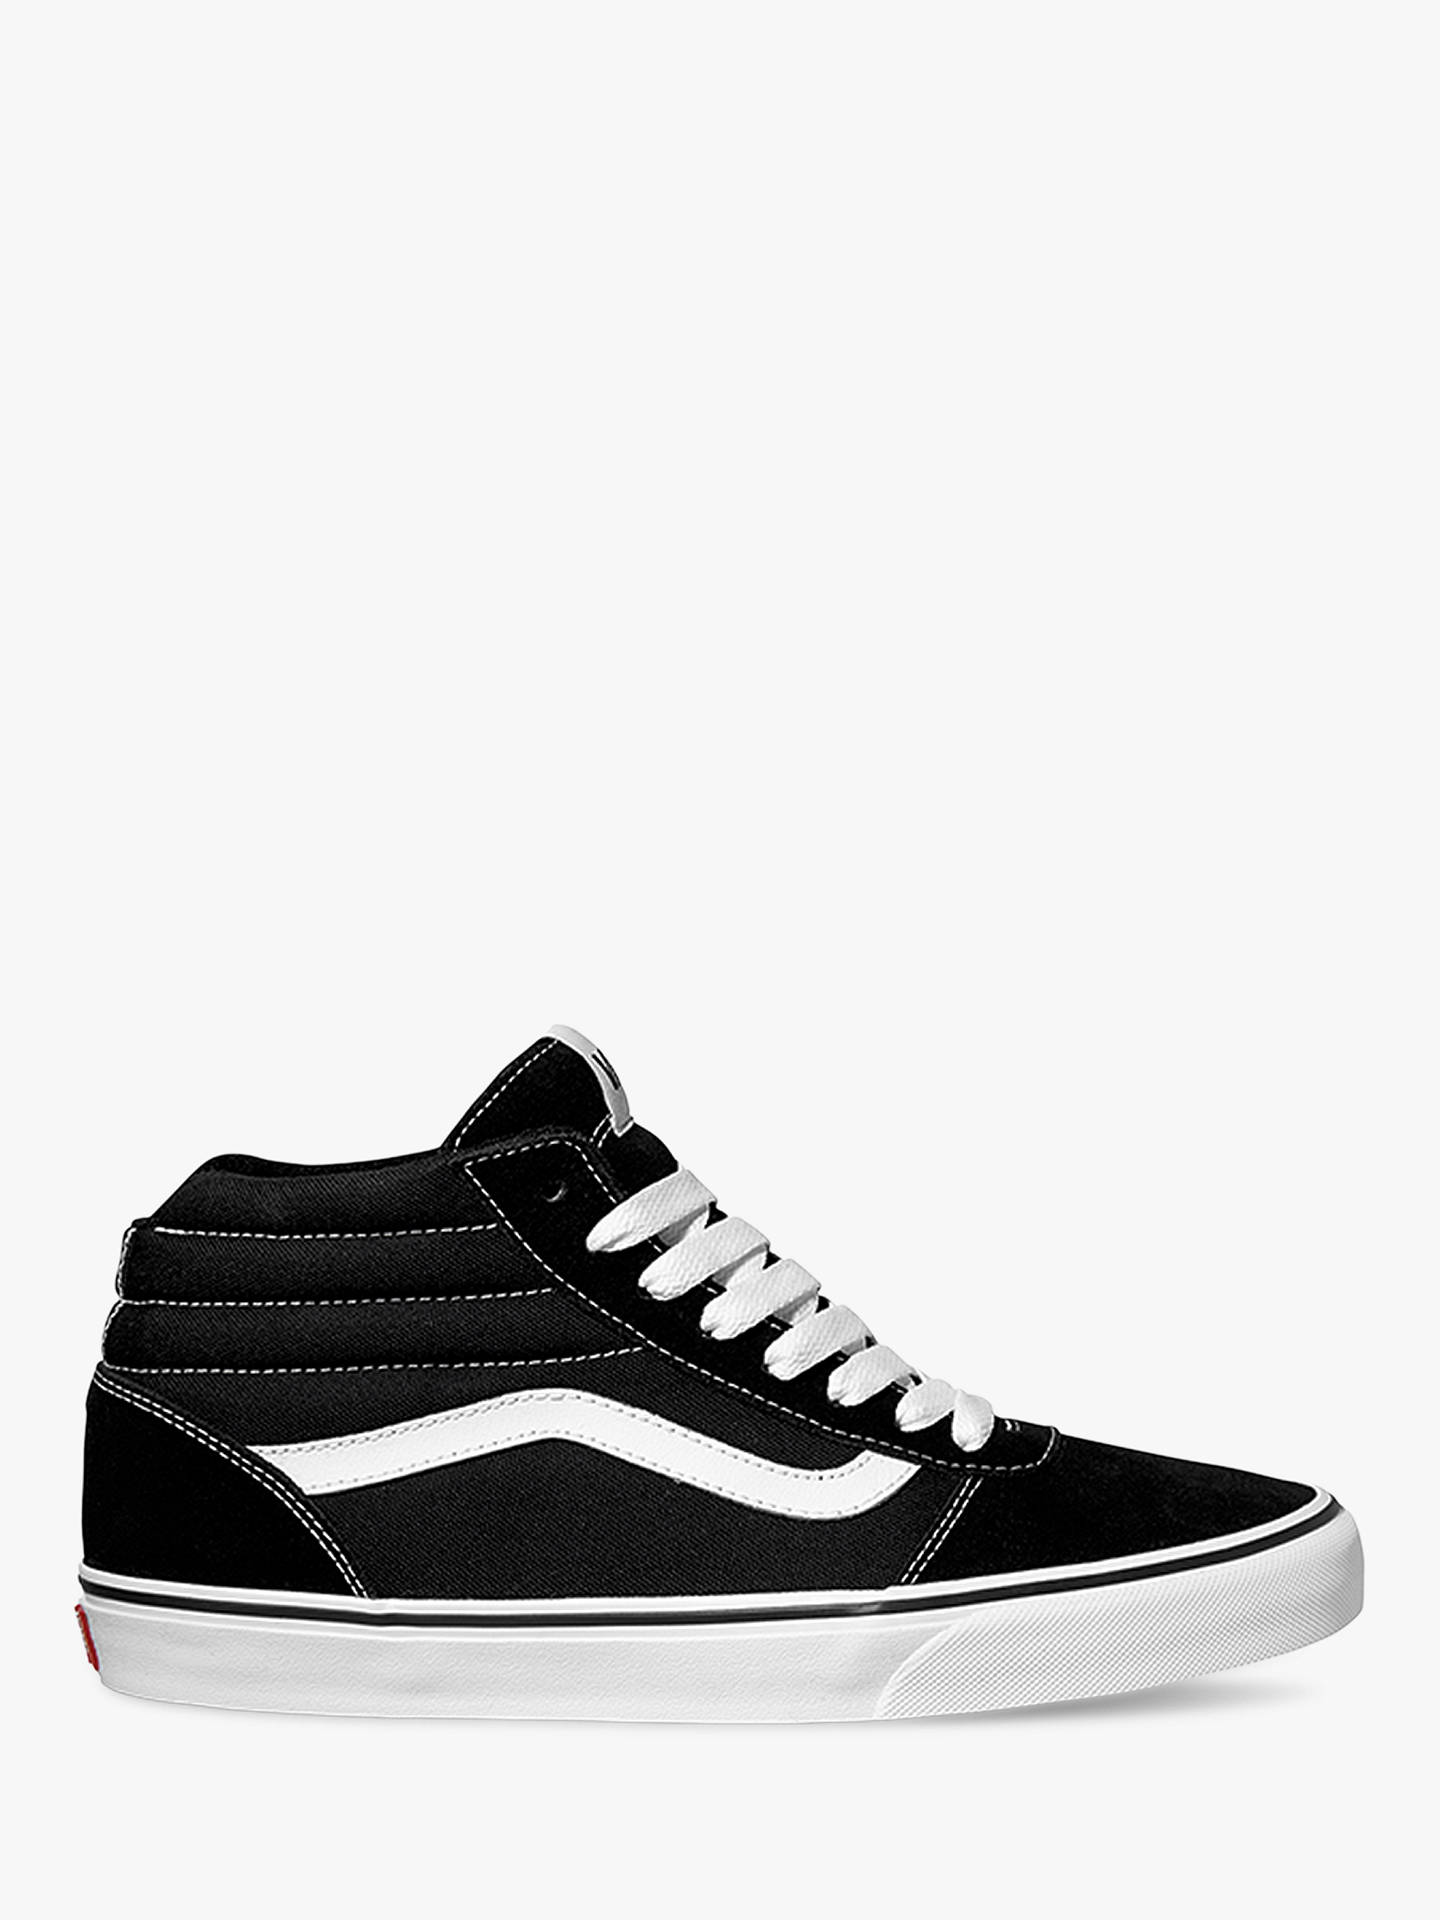 ed8a9d7b7b Buy Vans Ward Canvas High Top Trainers